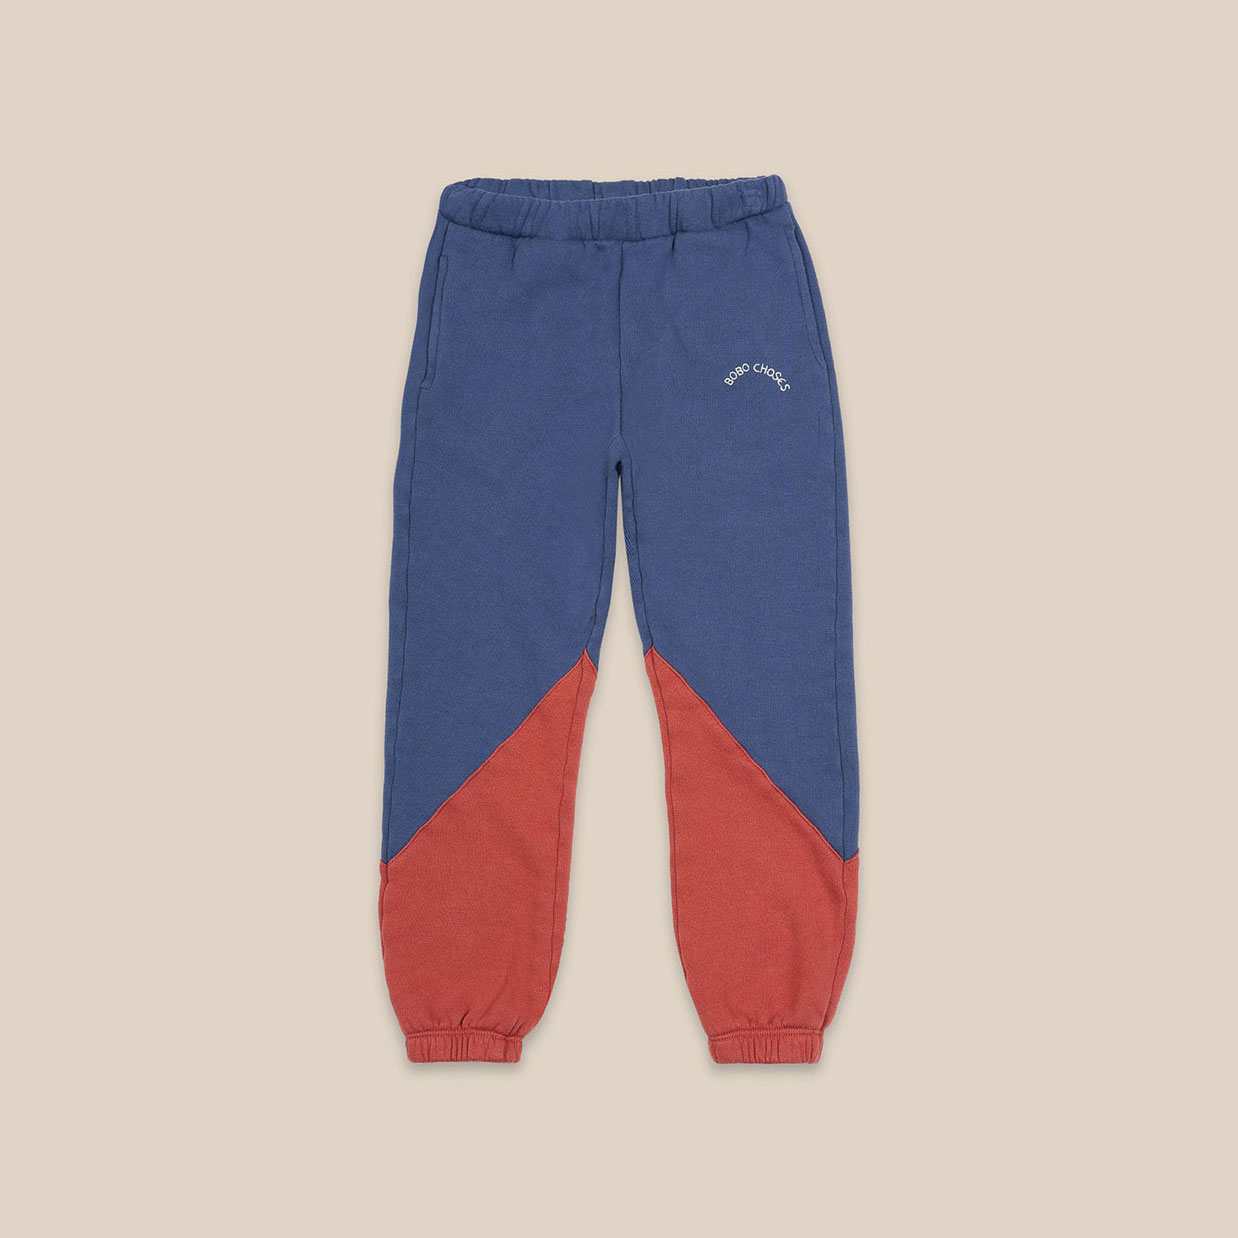 Bobo Choses - Color Block Jogging Pants